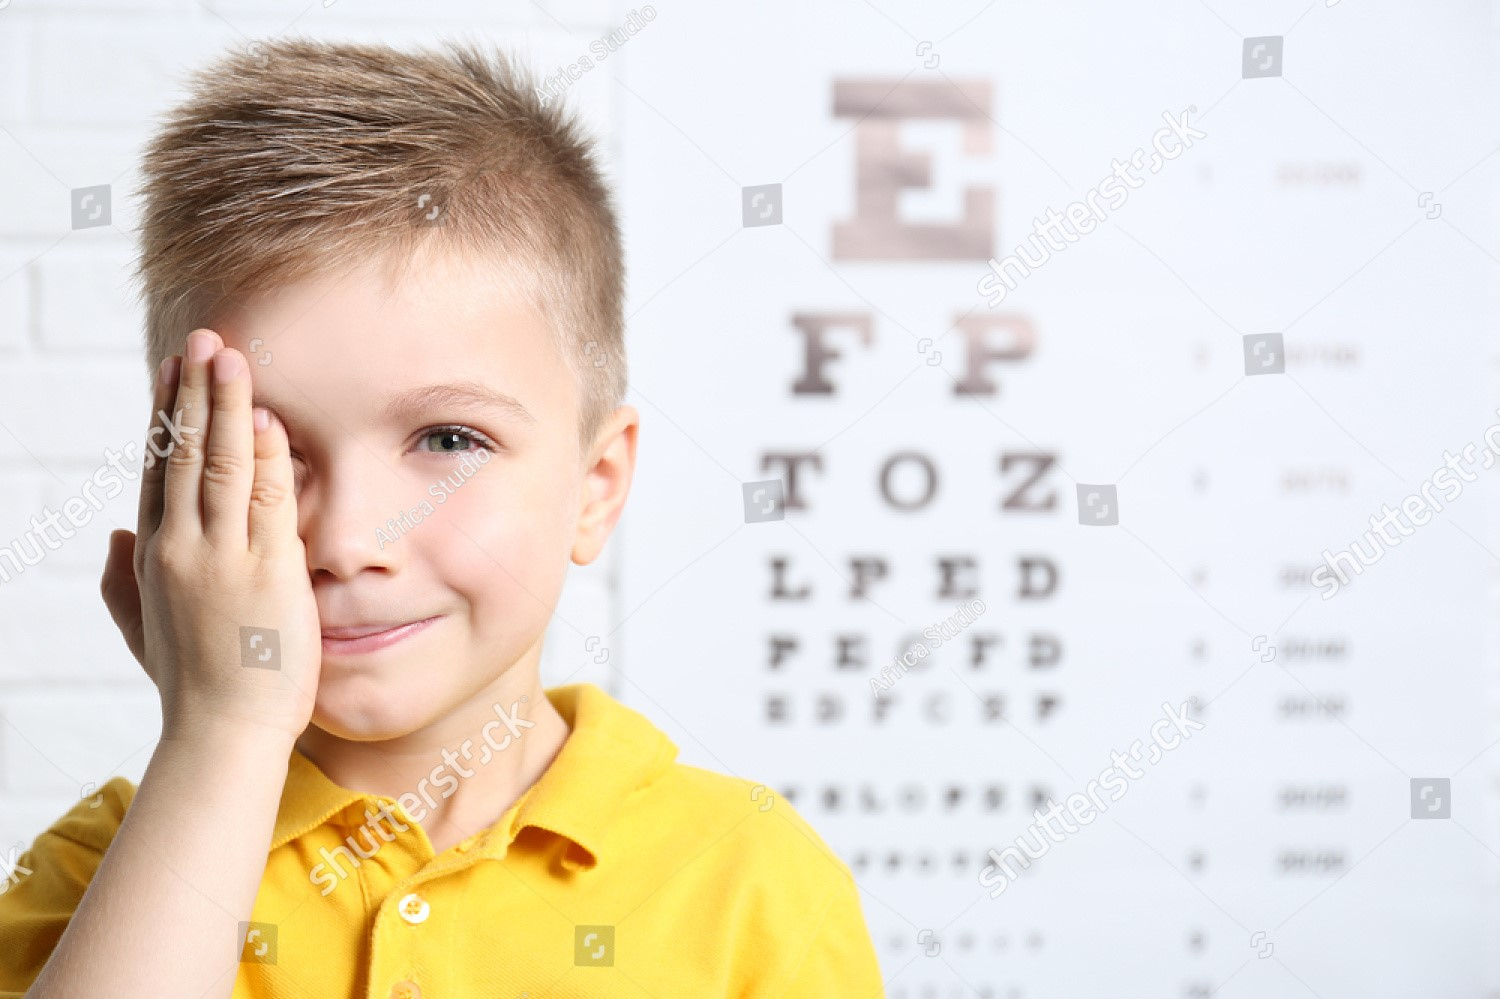 stock-photo-little-boy-having-eye-test-at-ophthalmologist-office-568229614